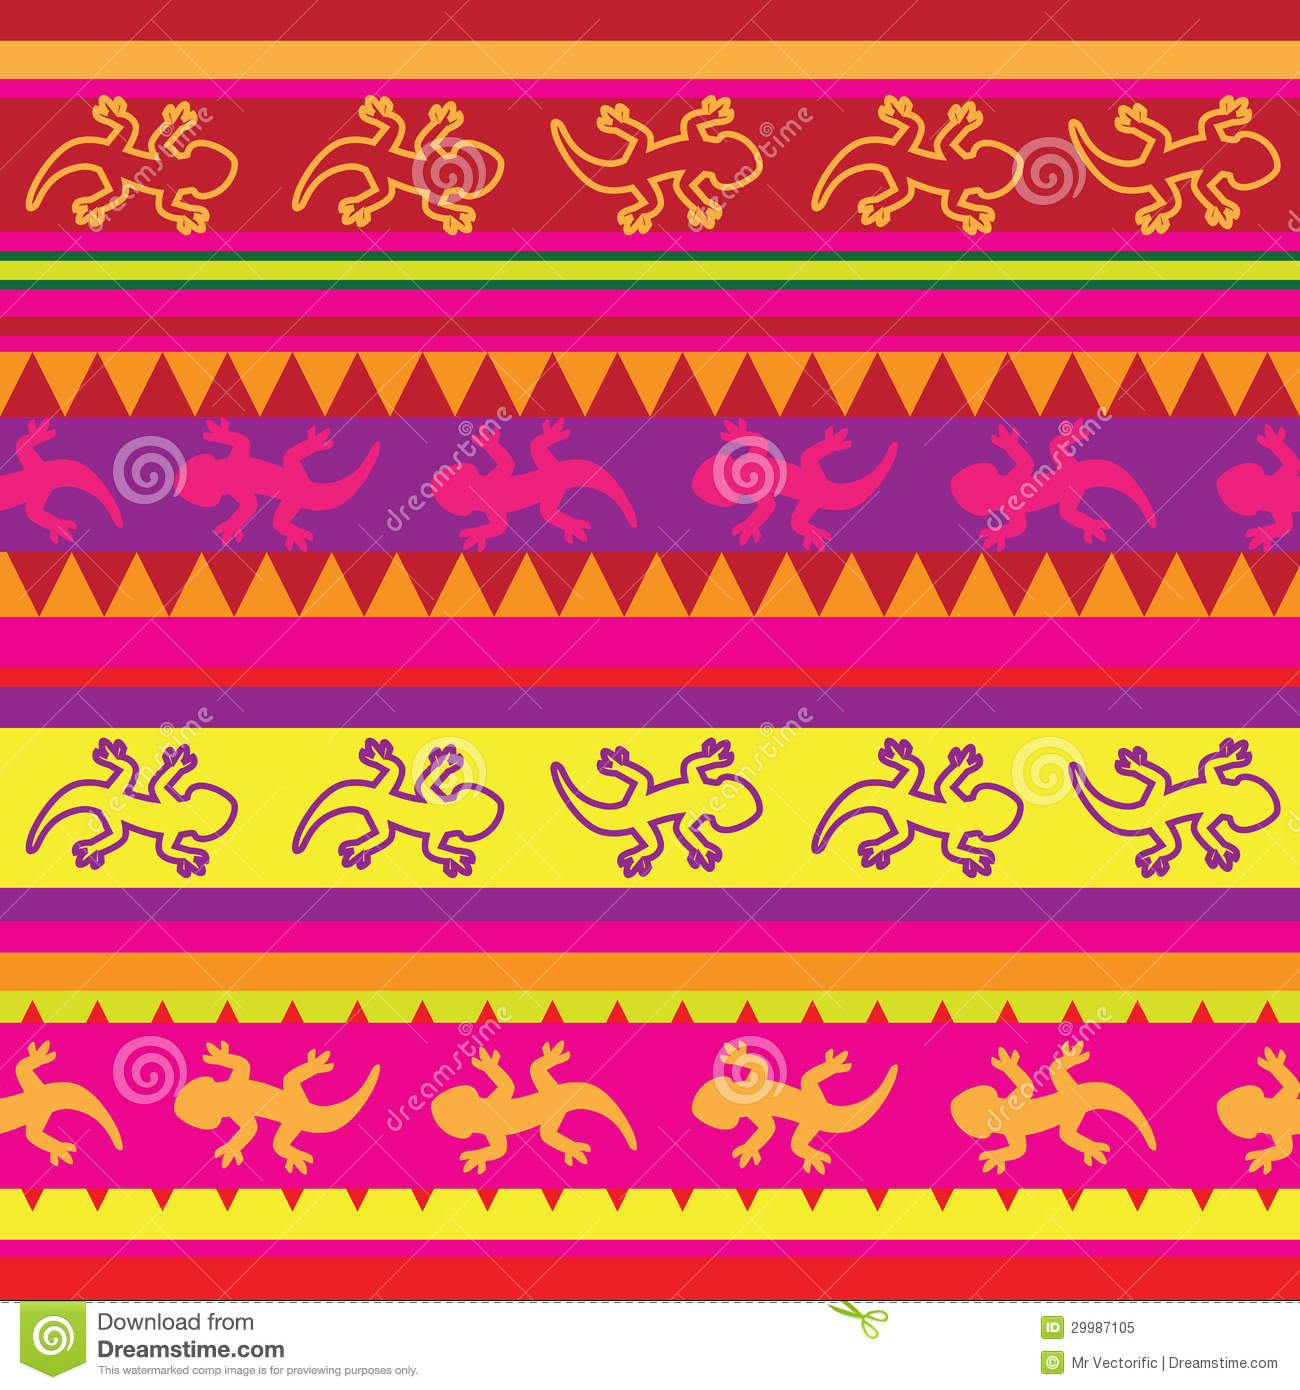 Seamless Mexican Lizard Fabric Pattern Royalty Free Stock